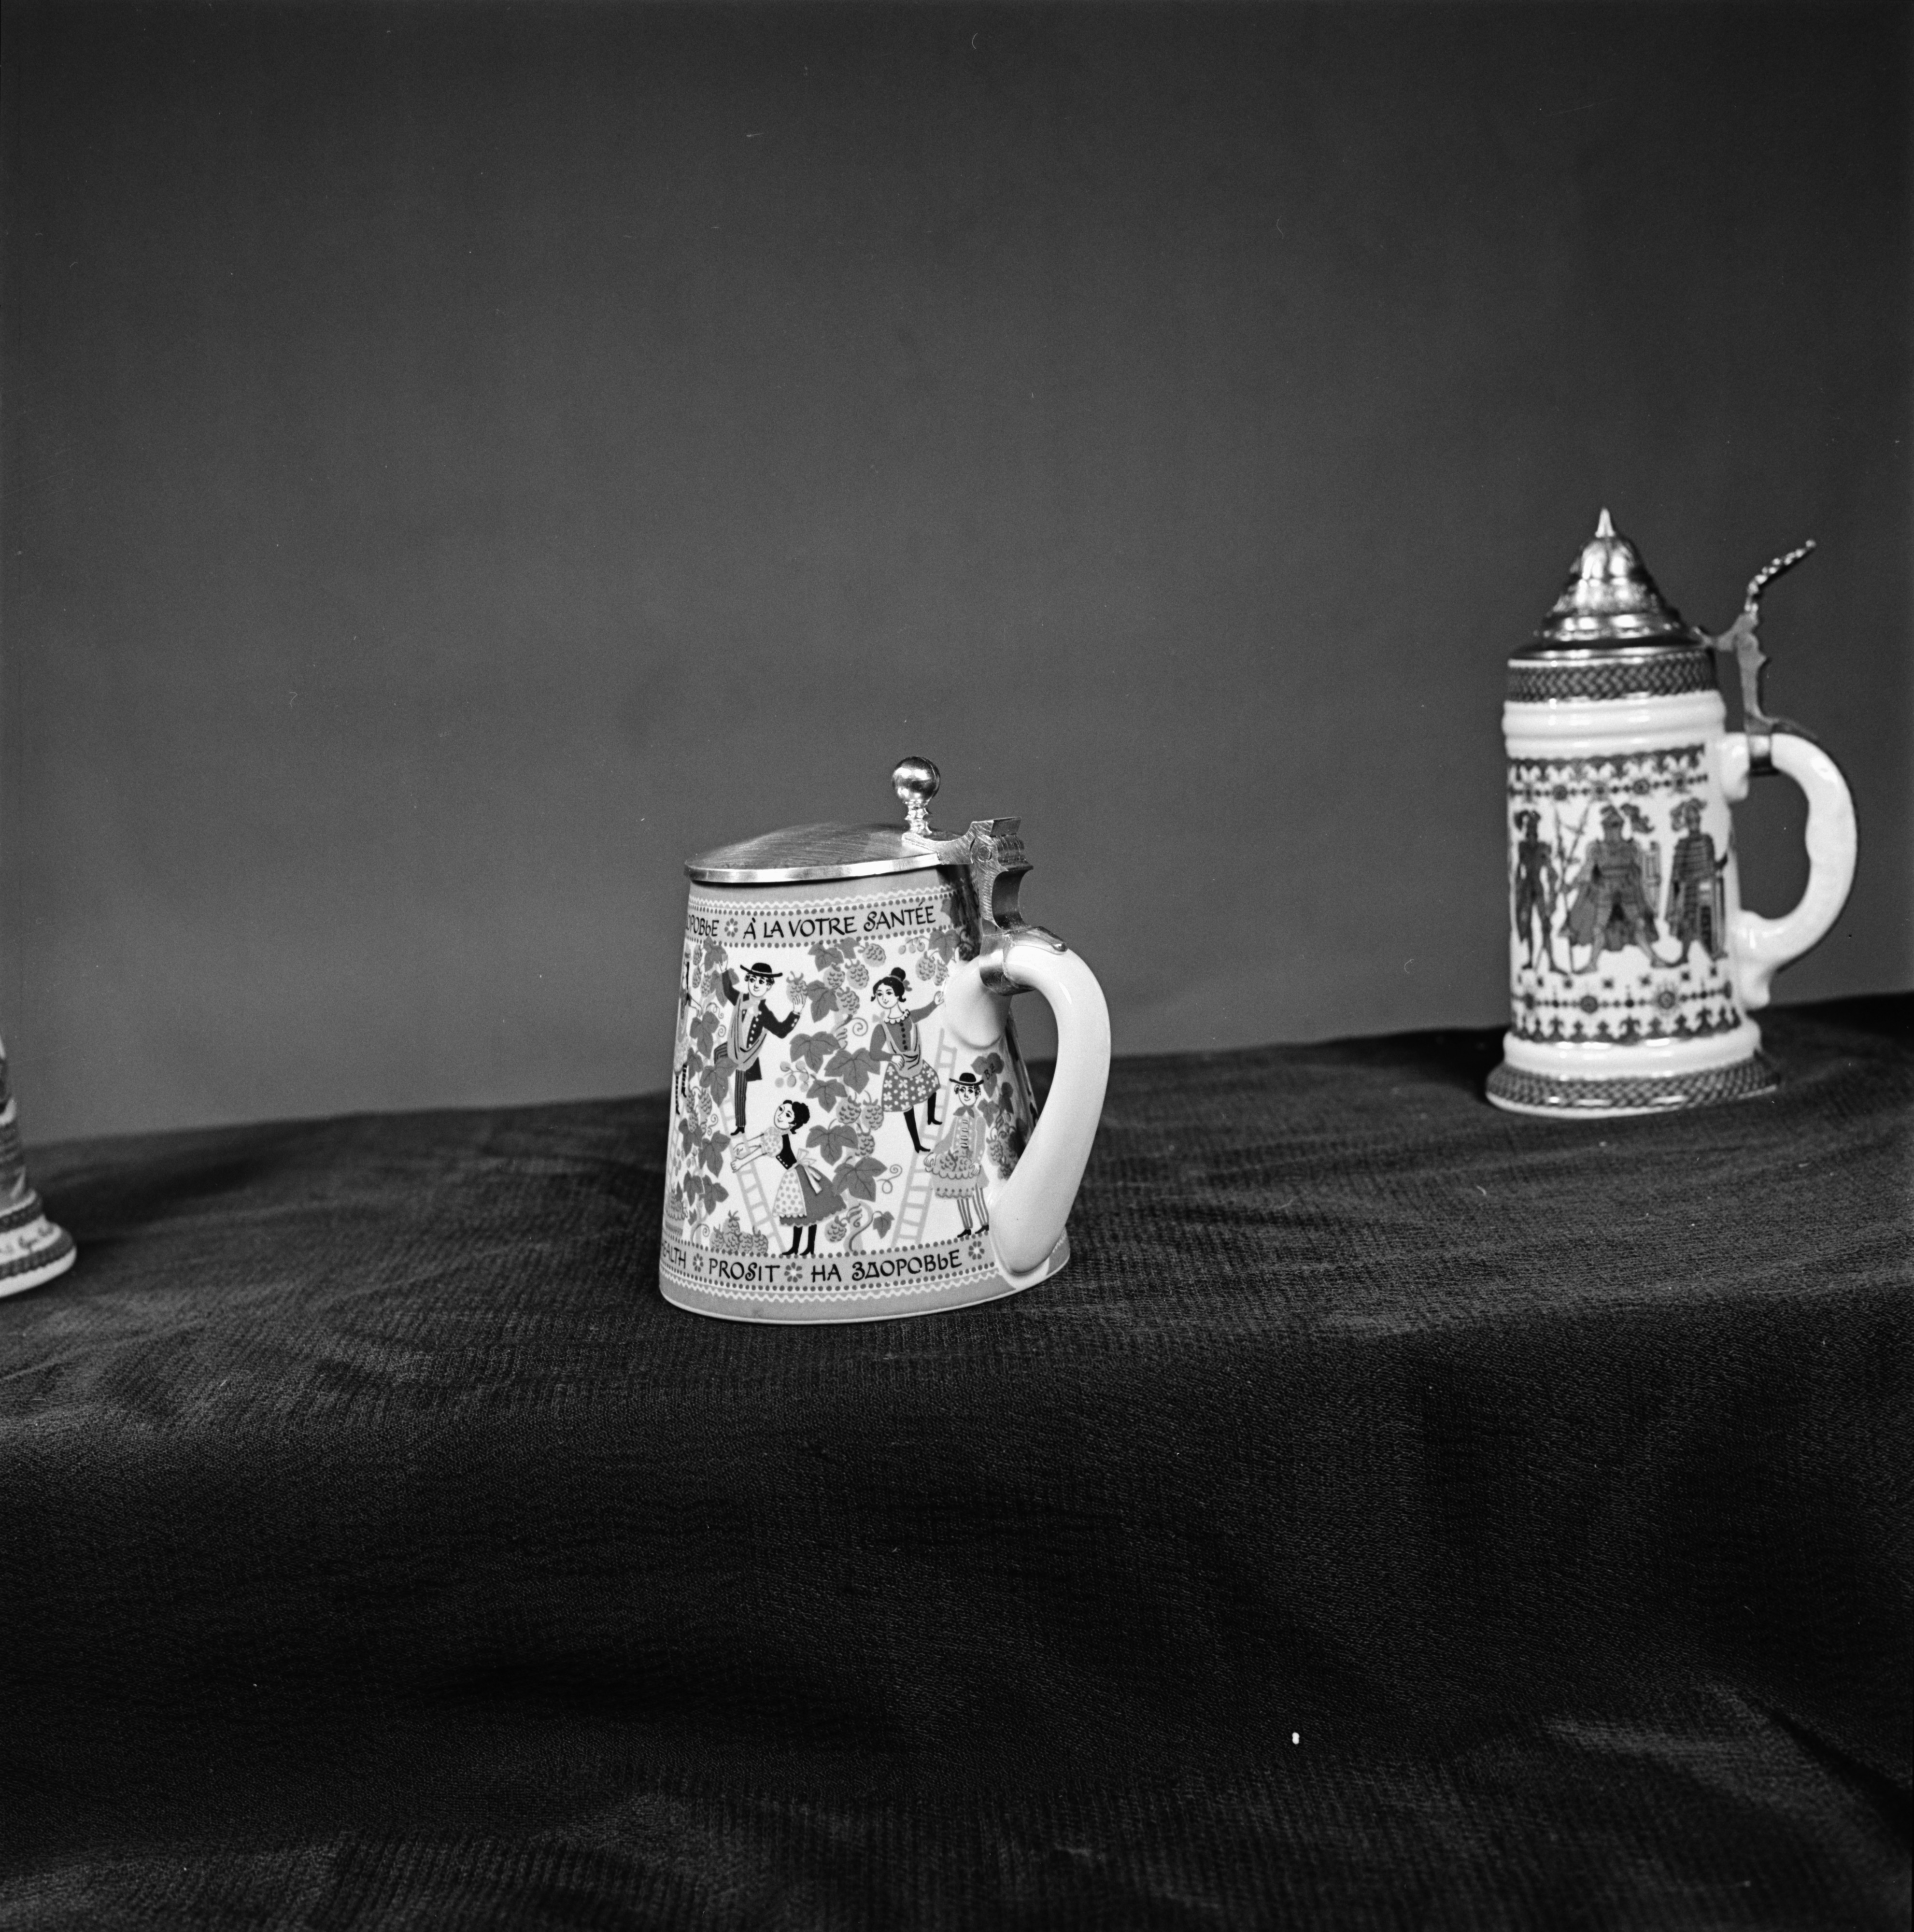 Beer Steins, from the Old German Restaurant, December 1969 image